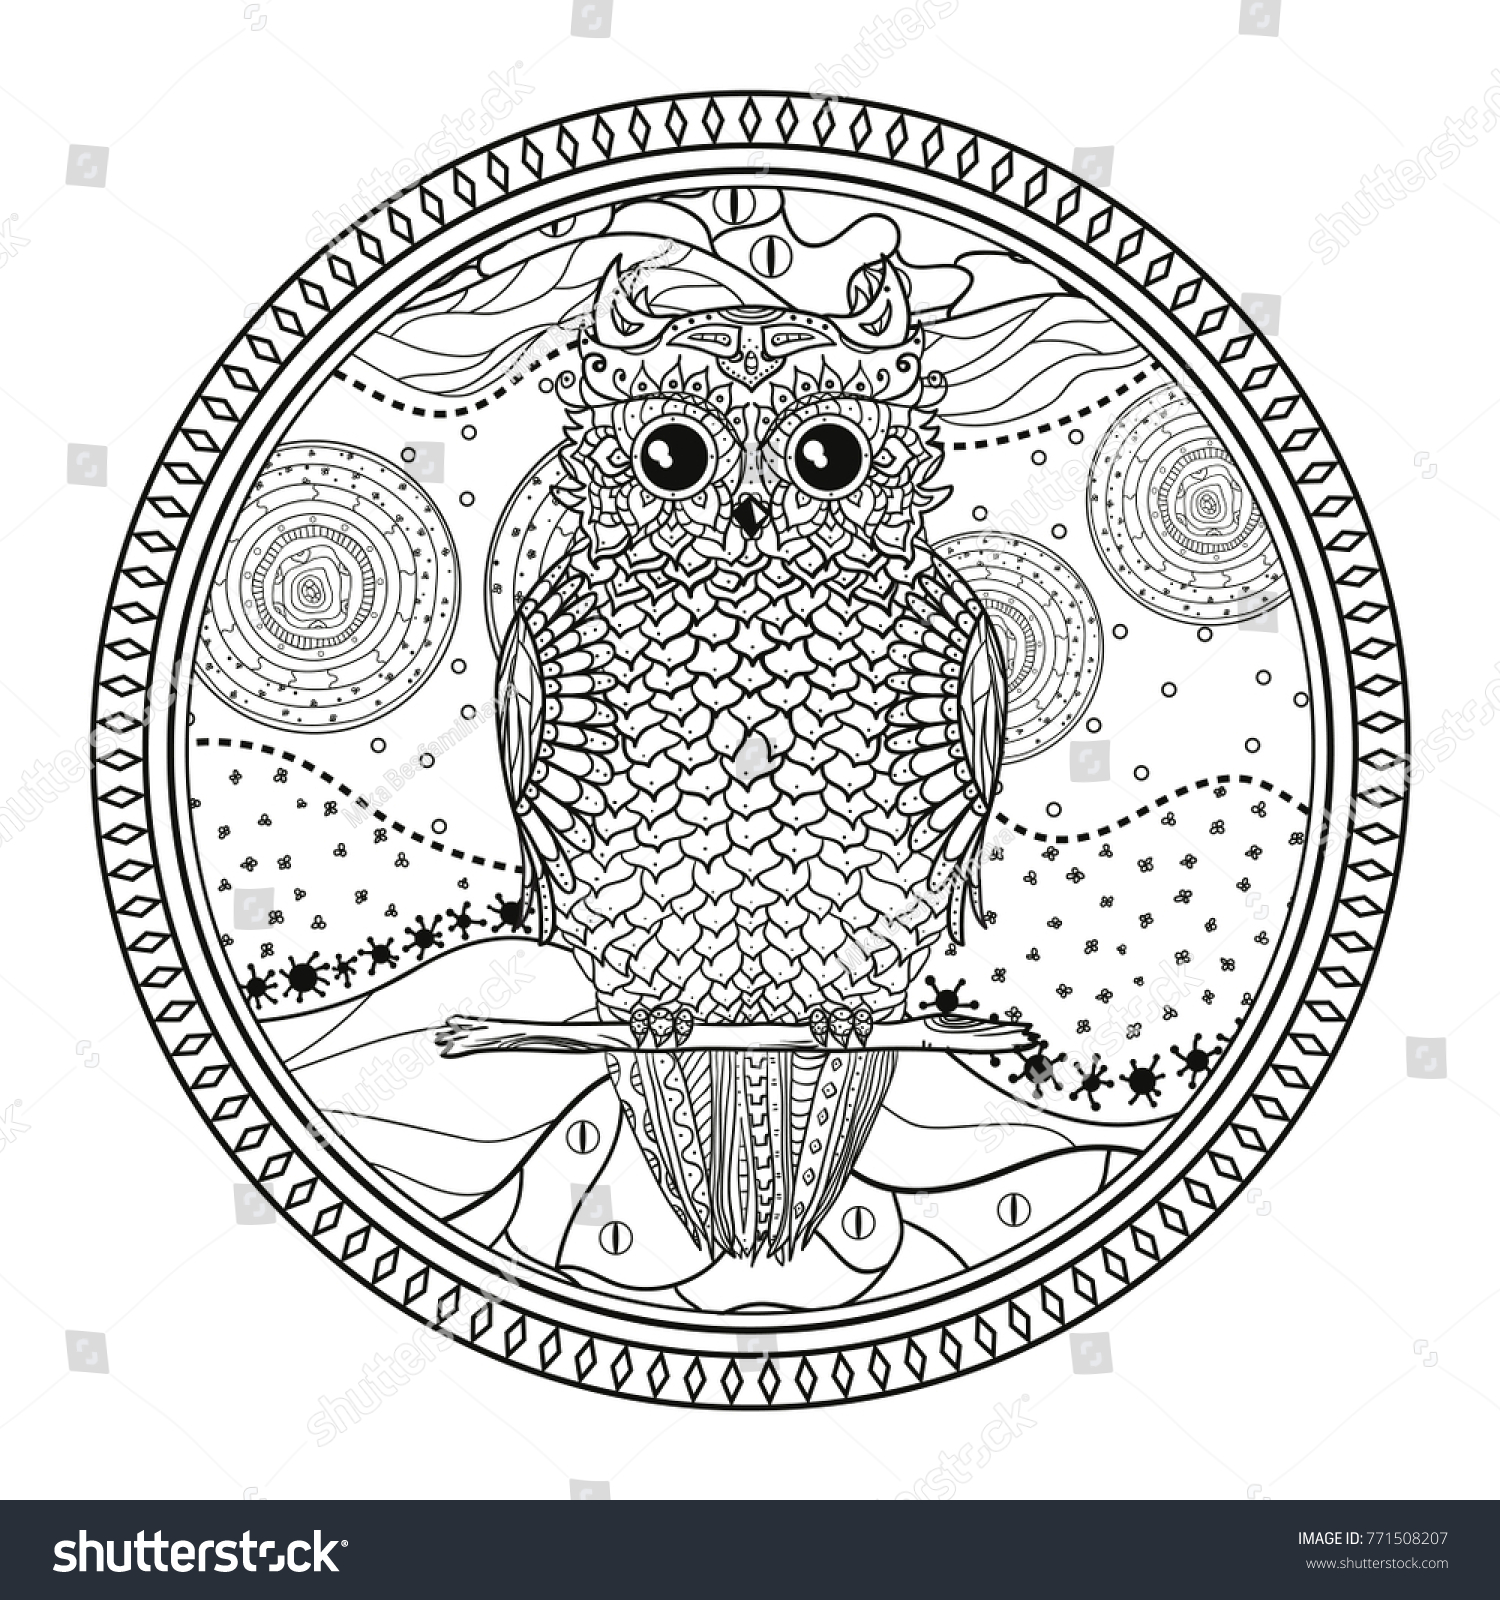 owl mandala with cute bird zentangle hand drawn abstract patterns on isolation background